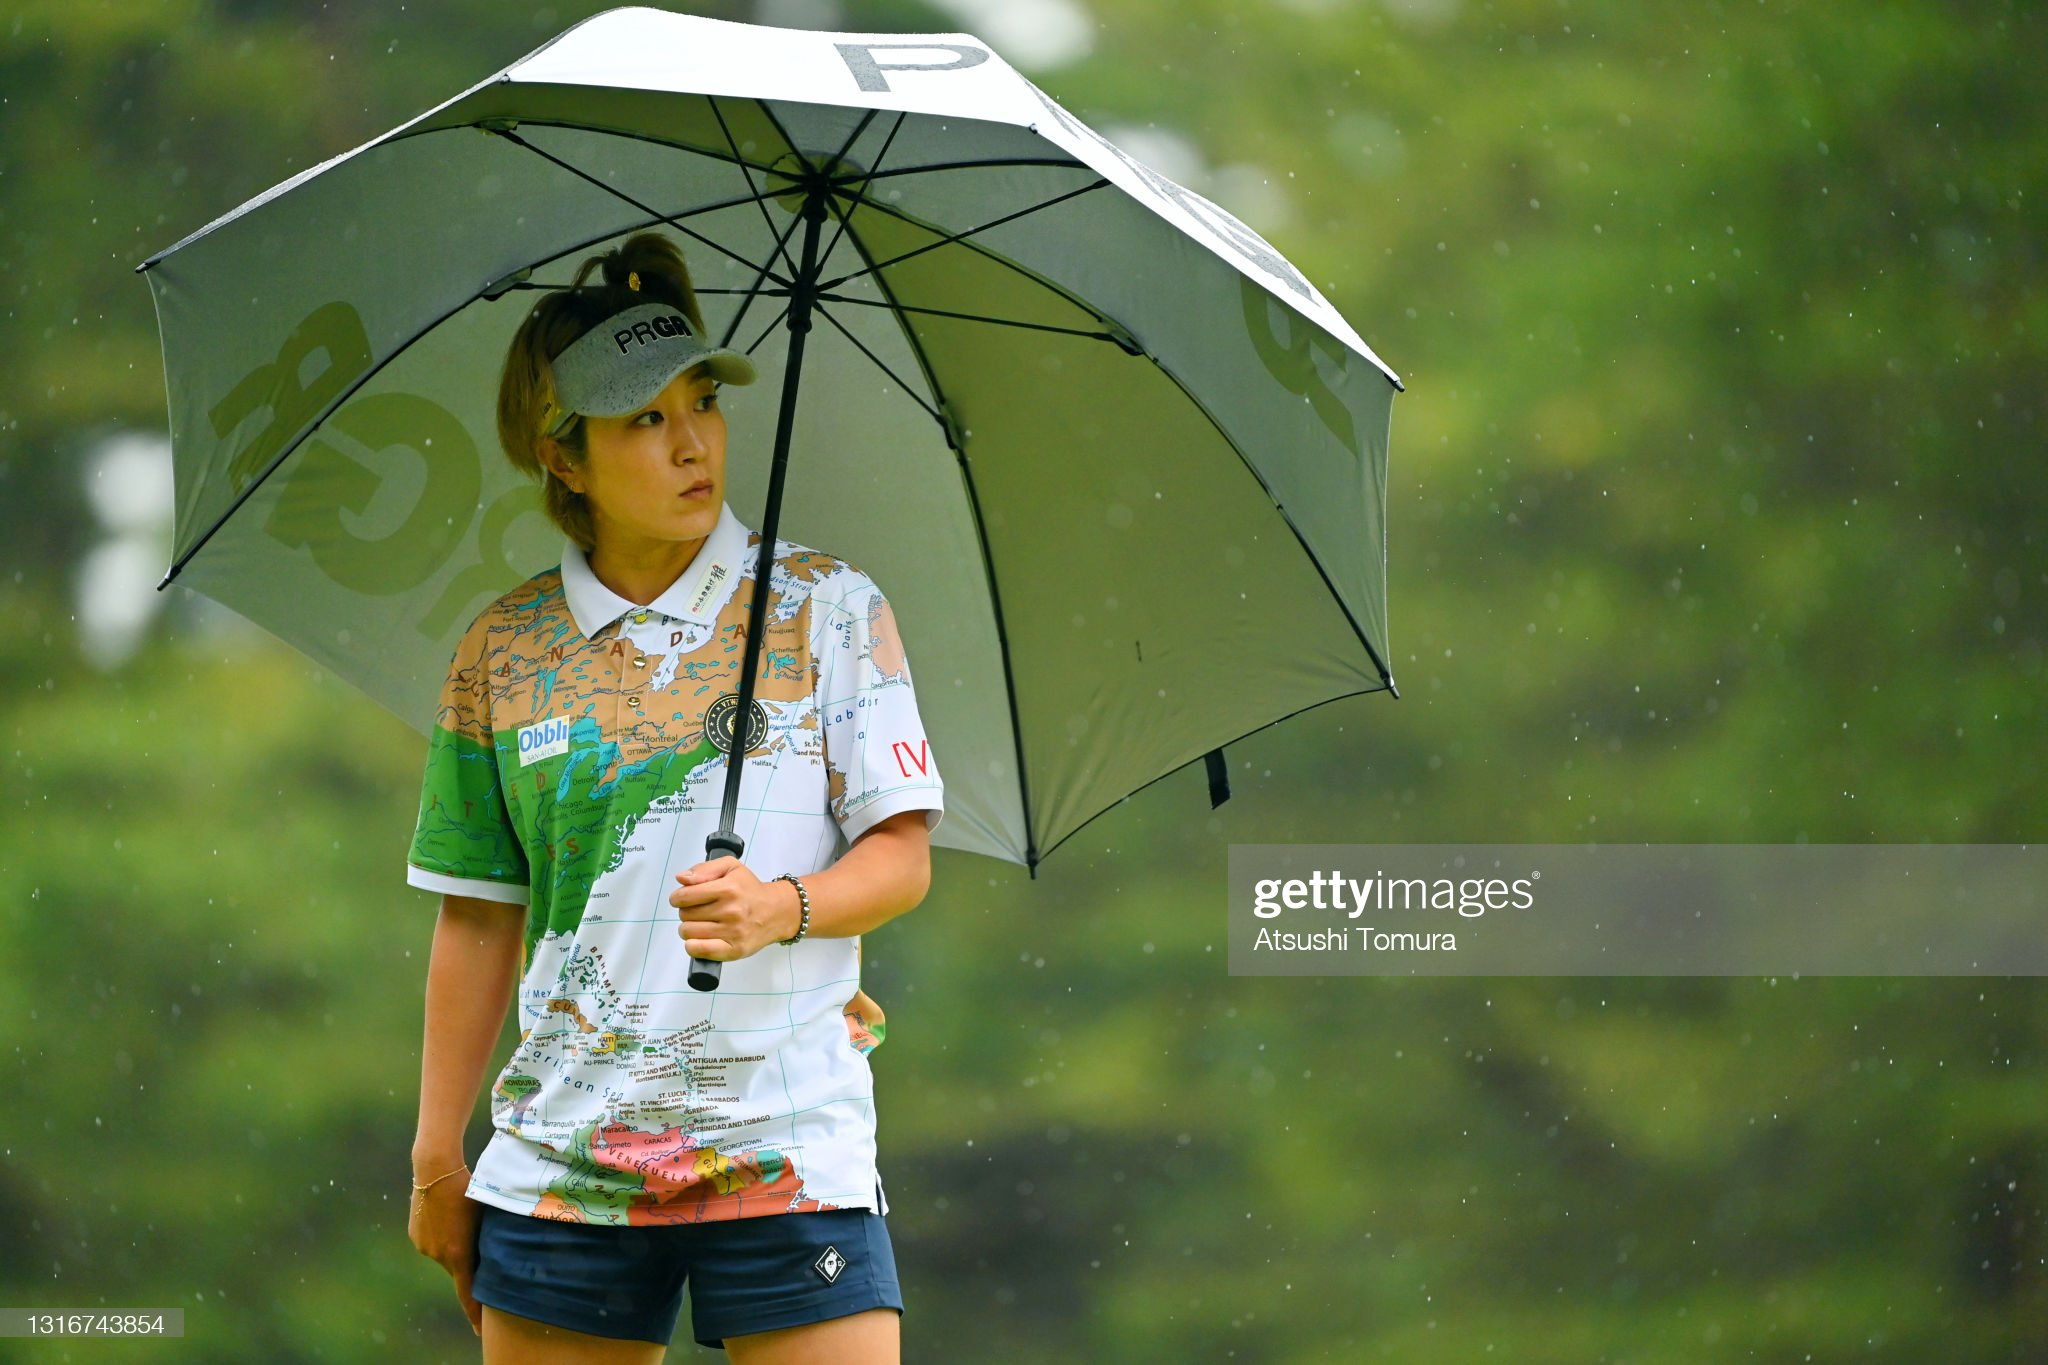 https://media.gettyimages.com/photos/asako-fujimoto-of-japan-is-seen-on-the-12th-hole-during-the-second-picture-id1316743854?s=2048x2048